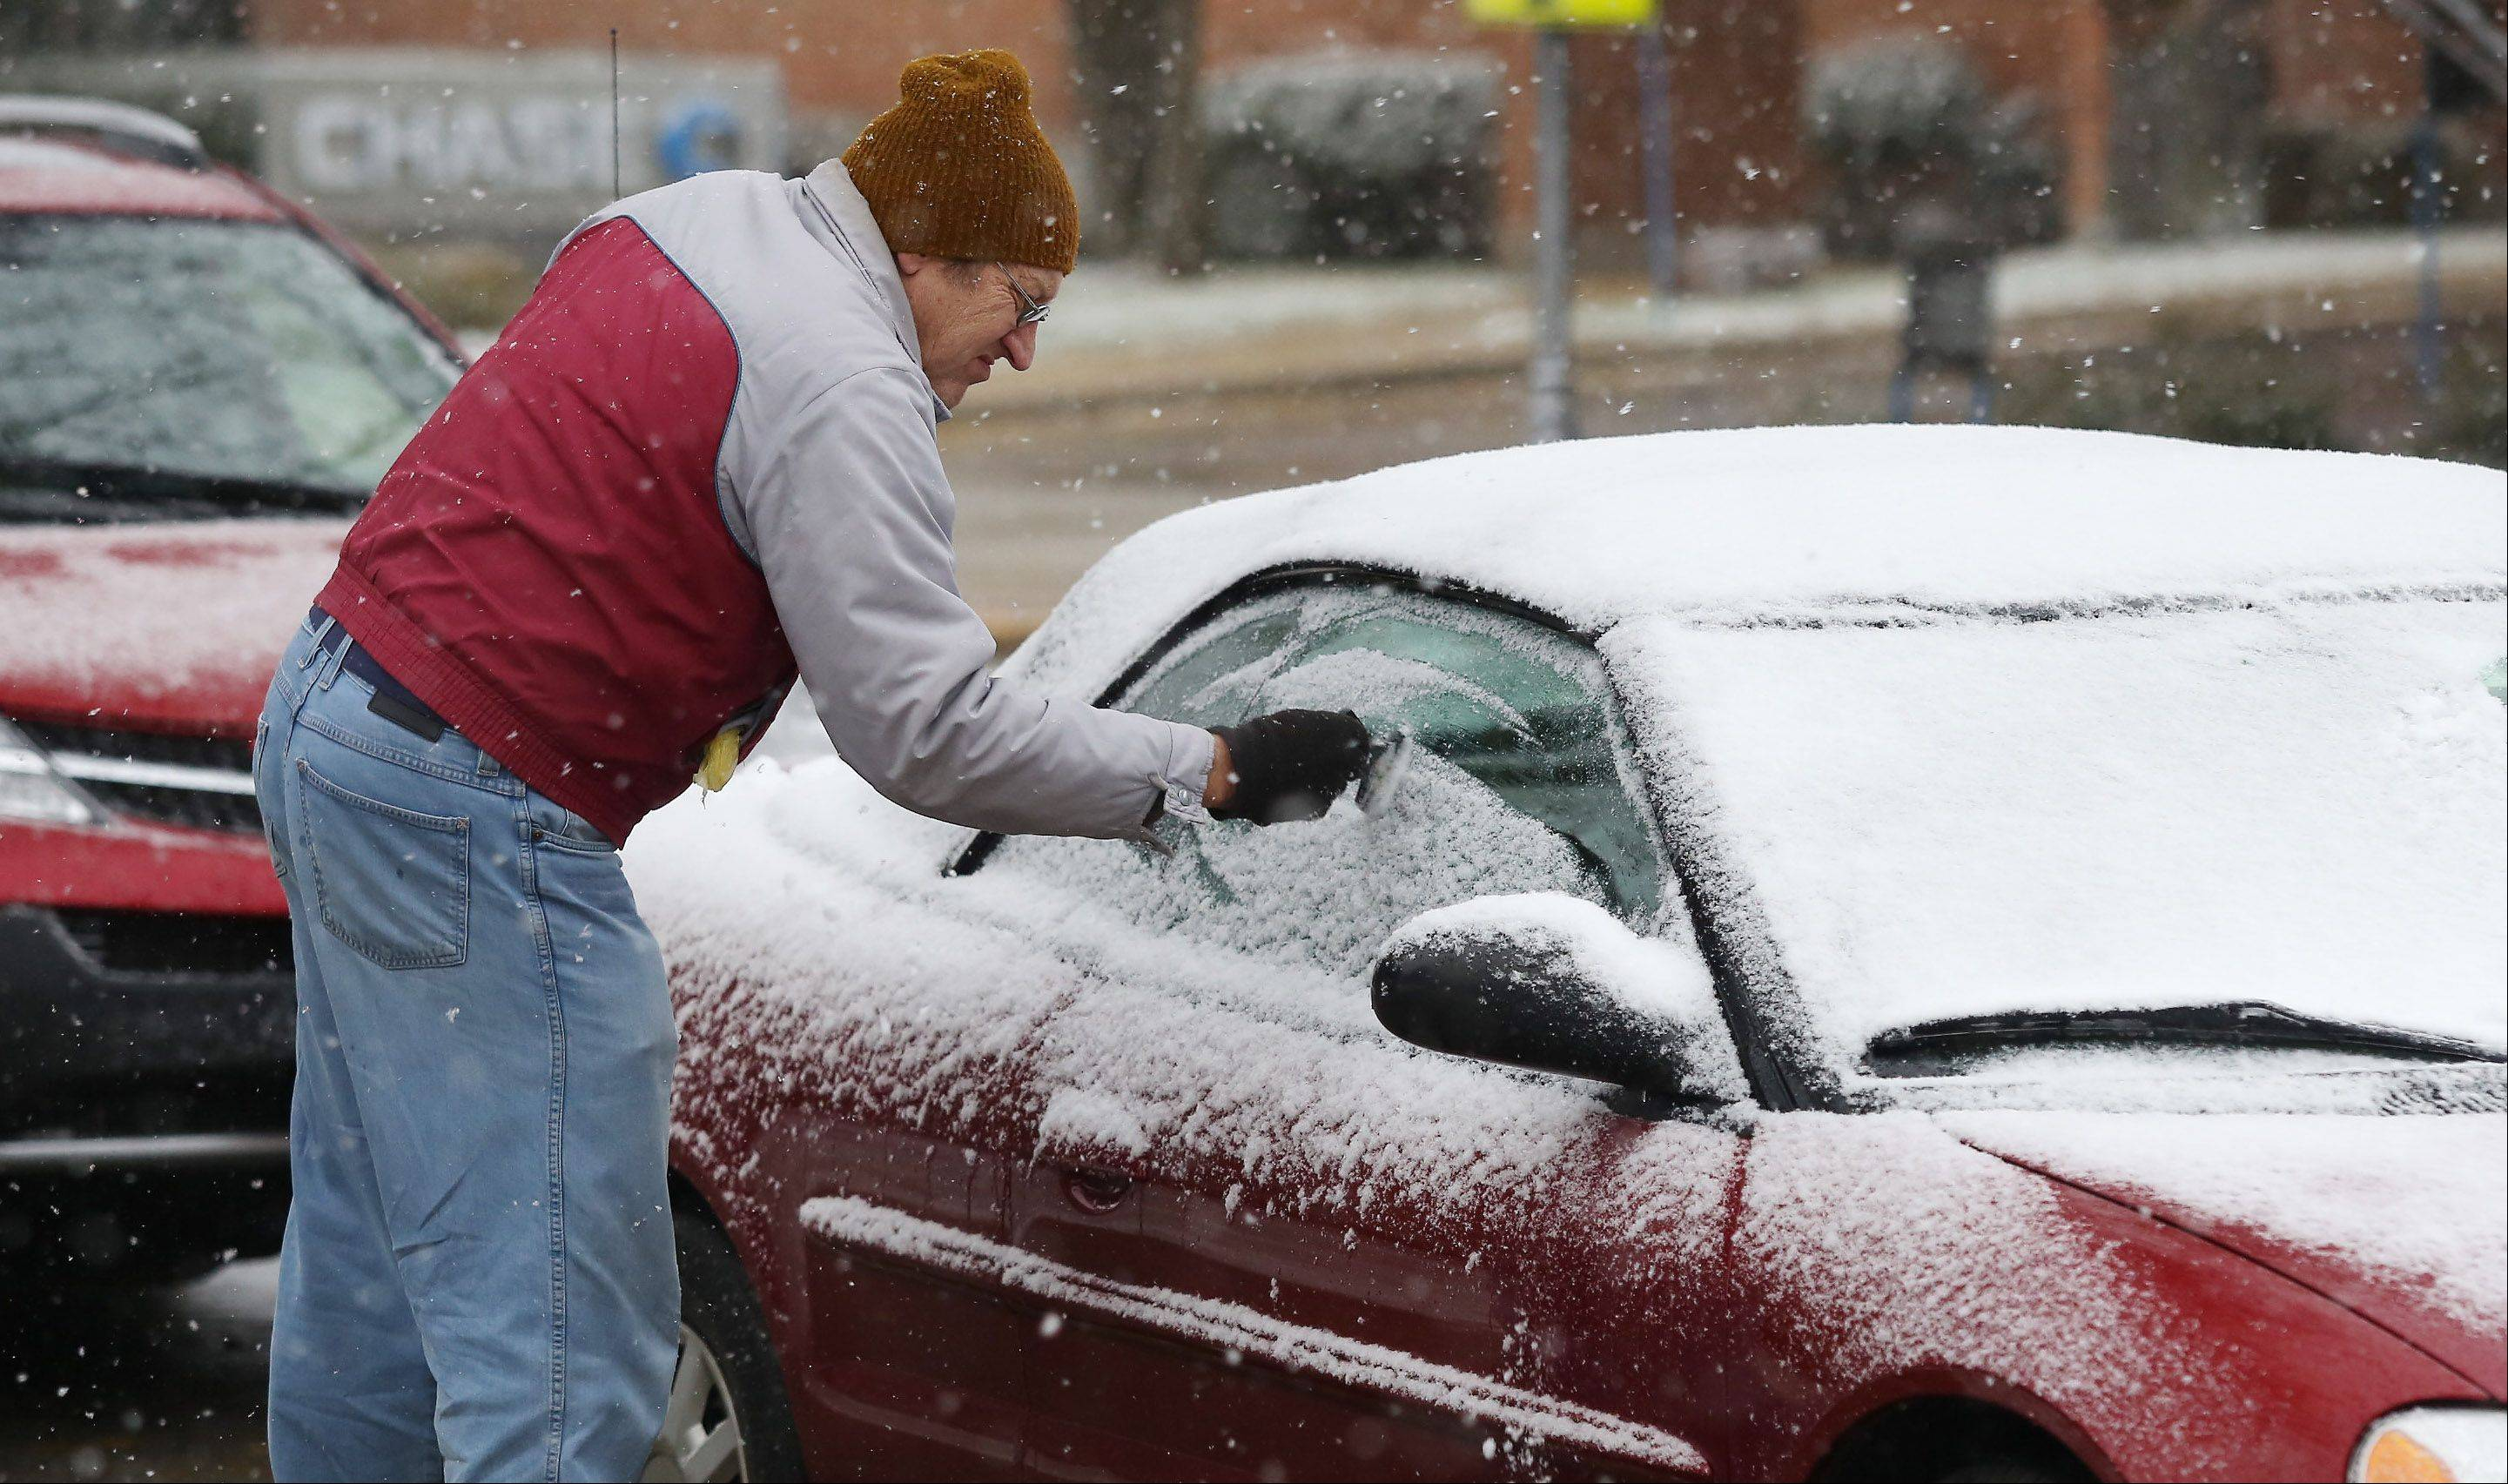 Paul Frisch, of Lake Forest, clears the snow from his car windows during the first snow fall of the season Monday near Cook Park in Libertyville.